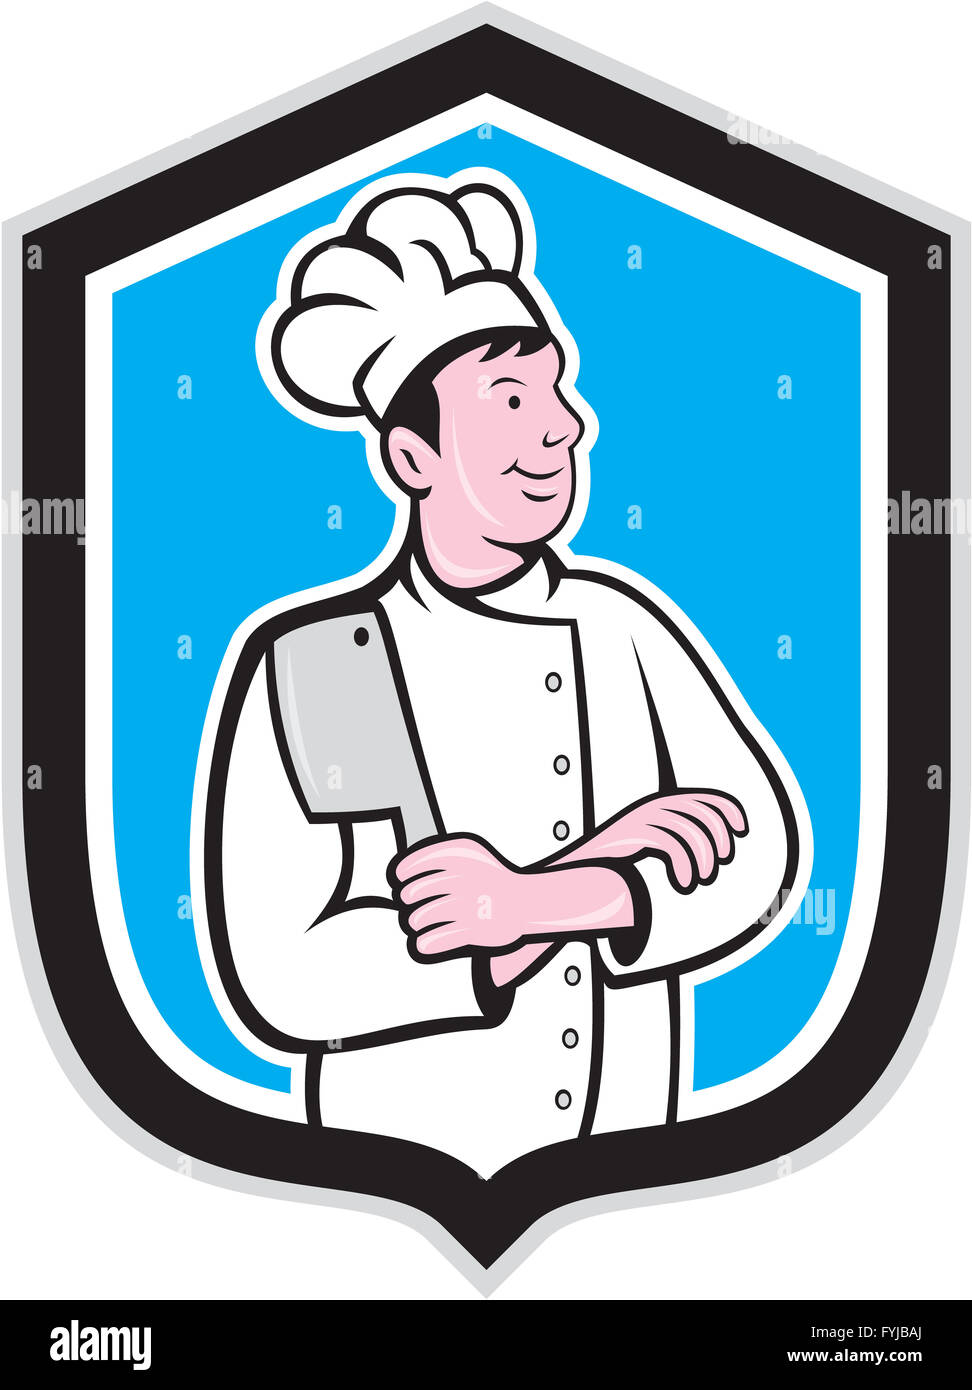 Cartoon Knife Stockfotos & Cartoon Knife Bilder - Seite 2 - Alamy